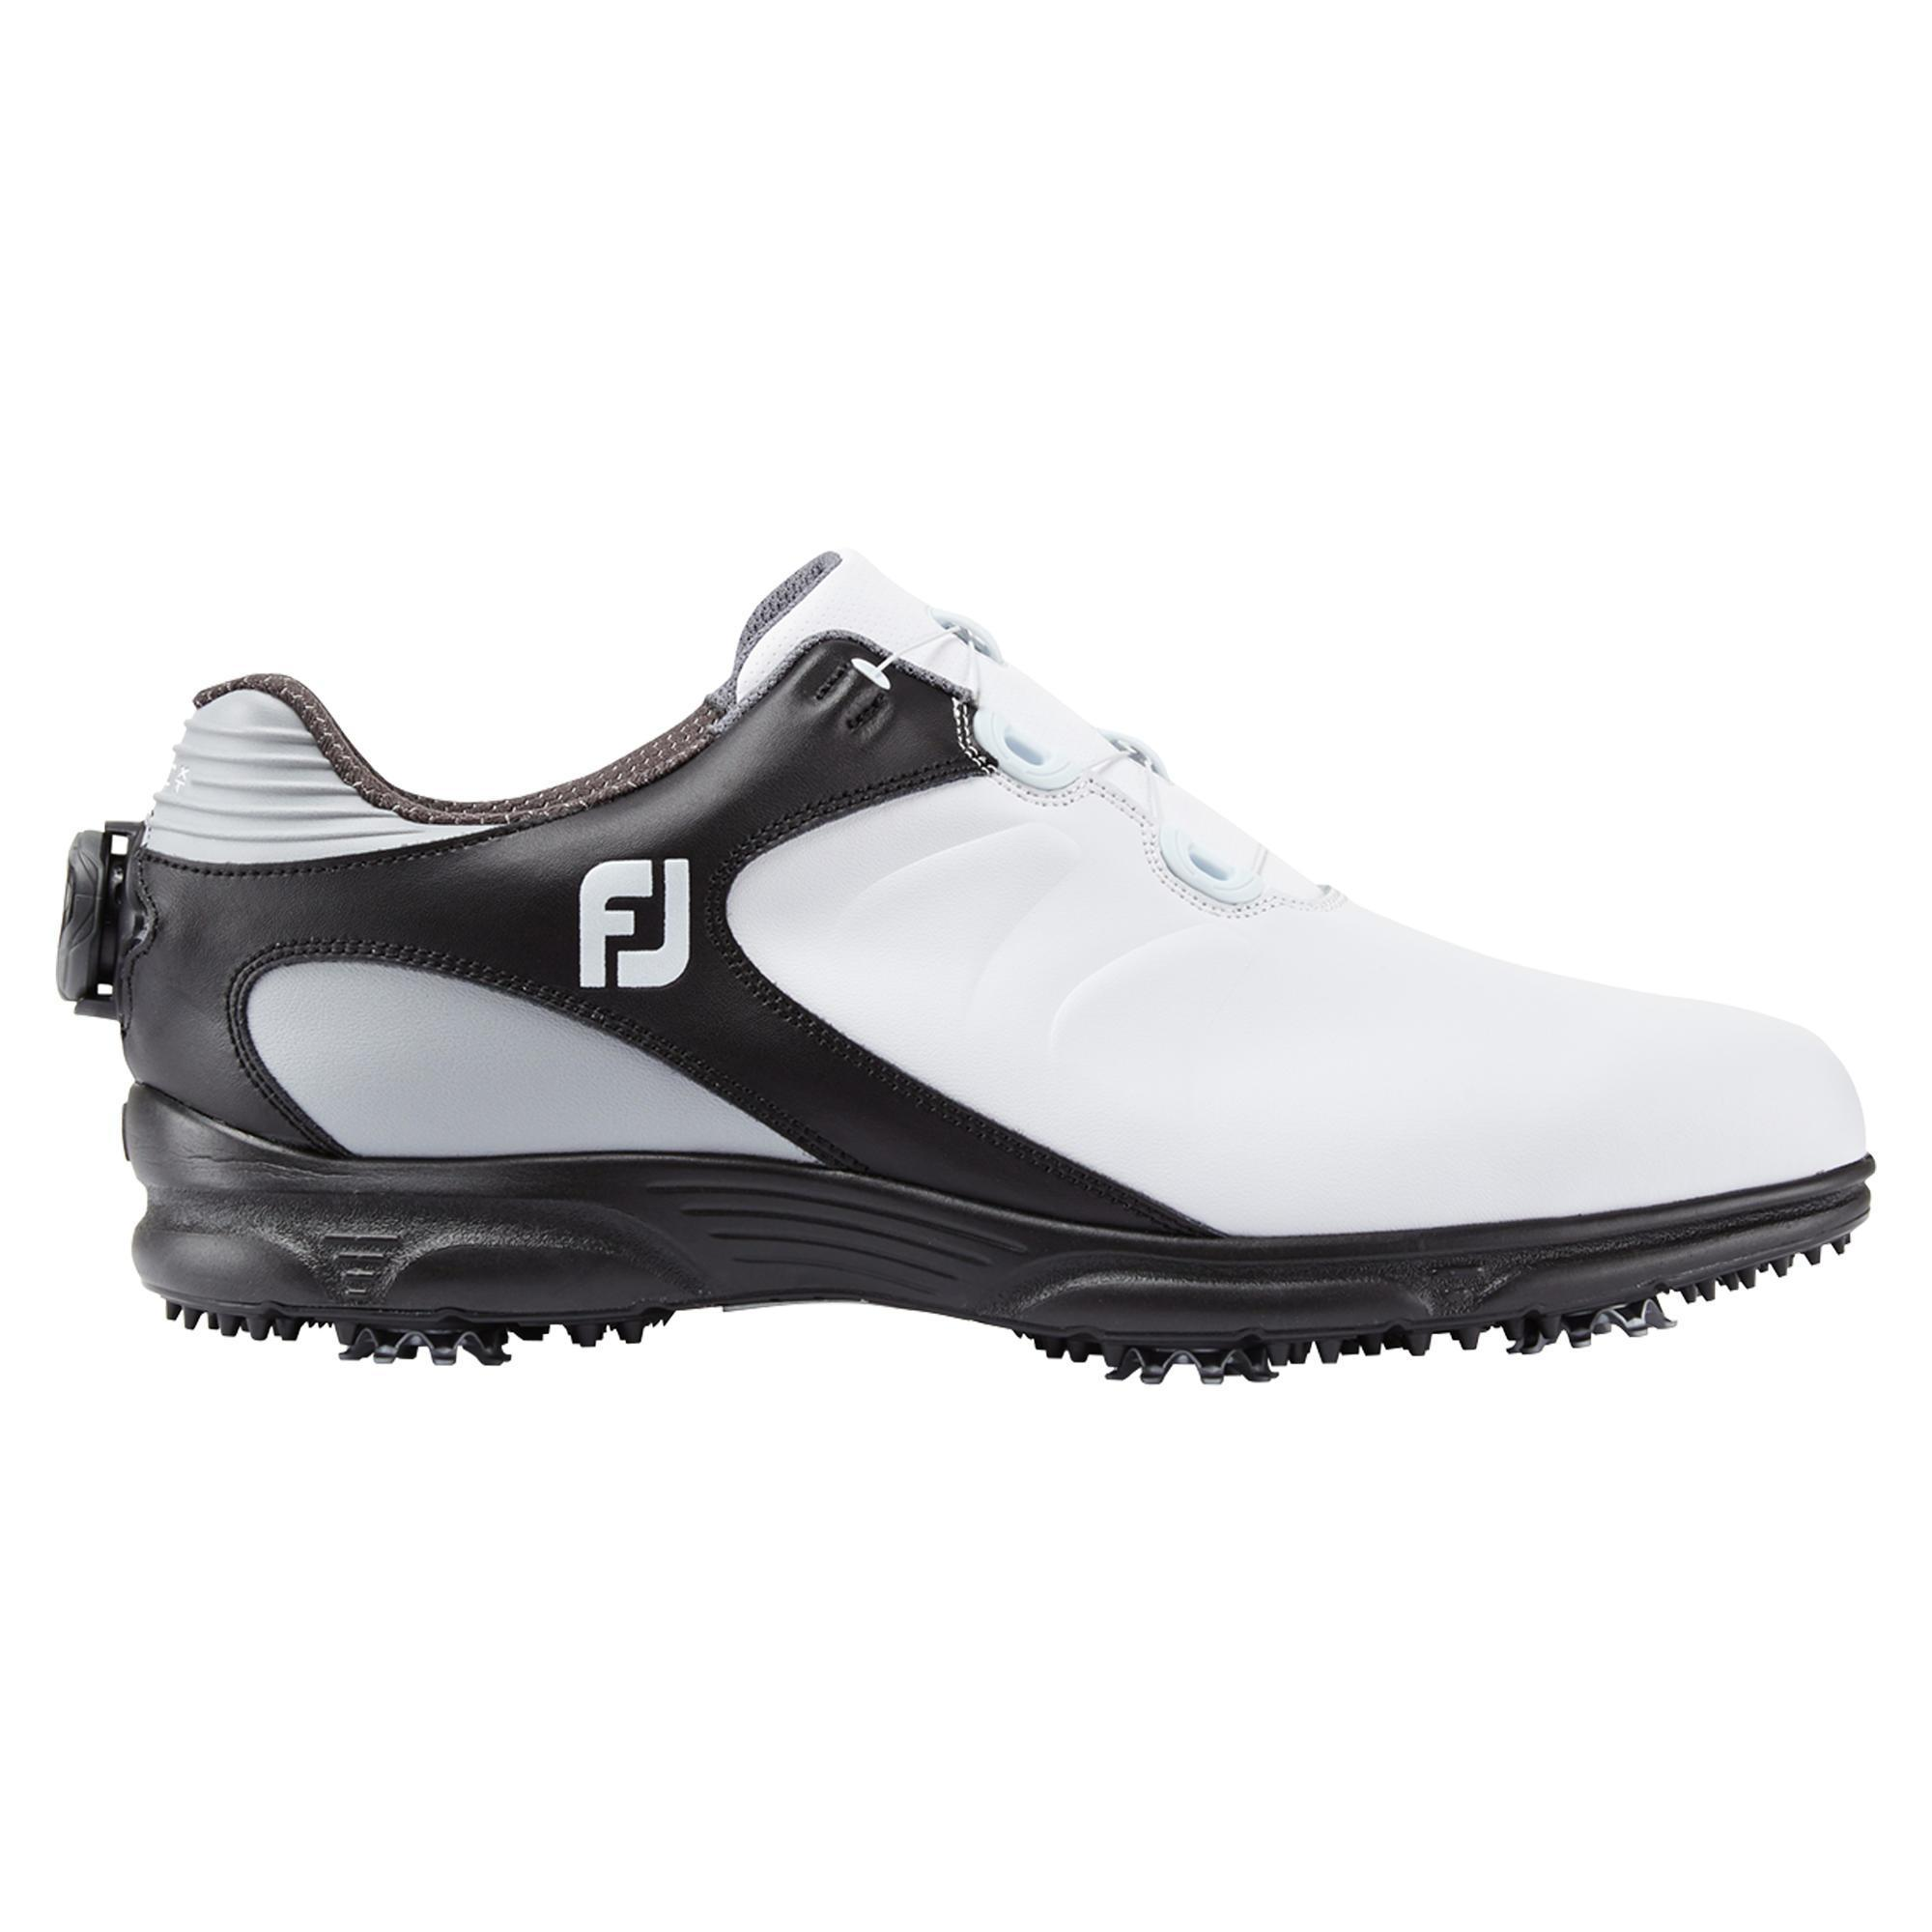 CHAUSSURES GOLF HOMME ARC XT BOA BLANCHES - Footjoy